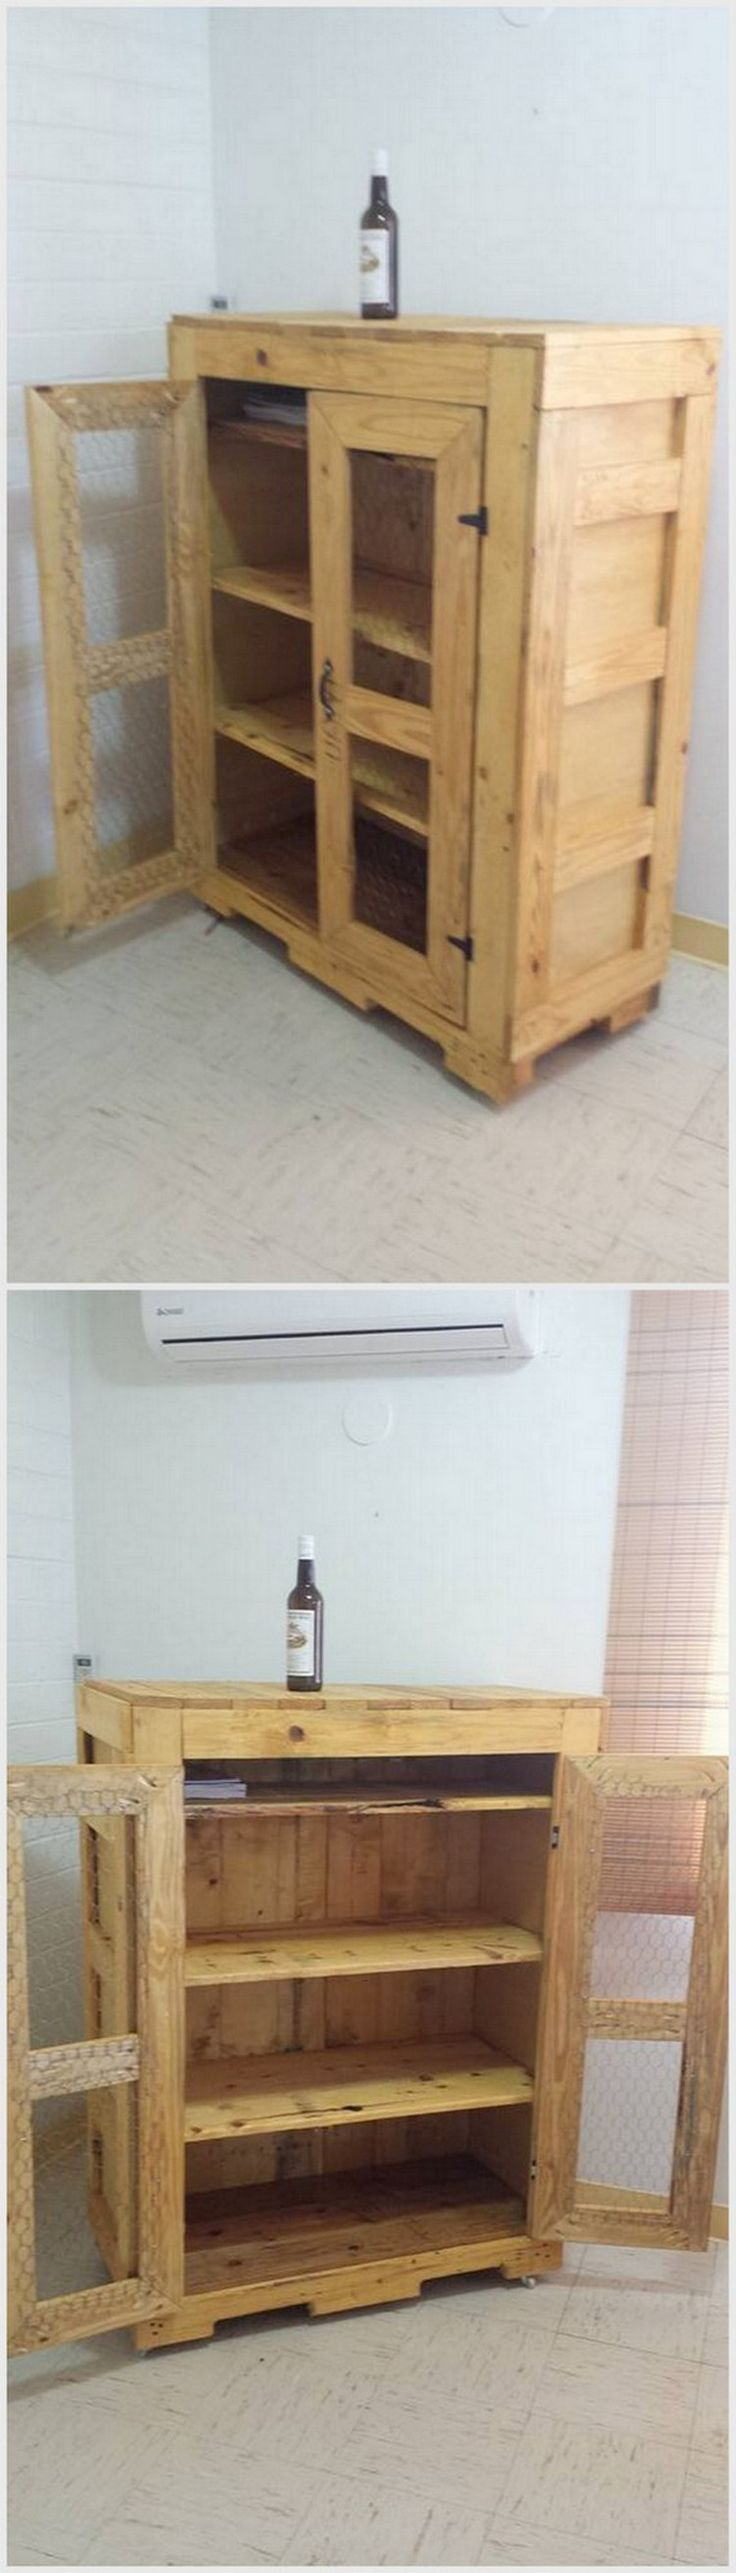 Marvelous Ideas with Used Shipping Pallets